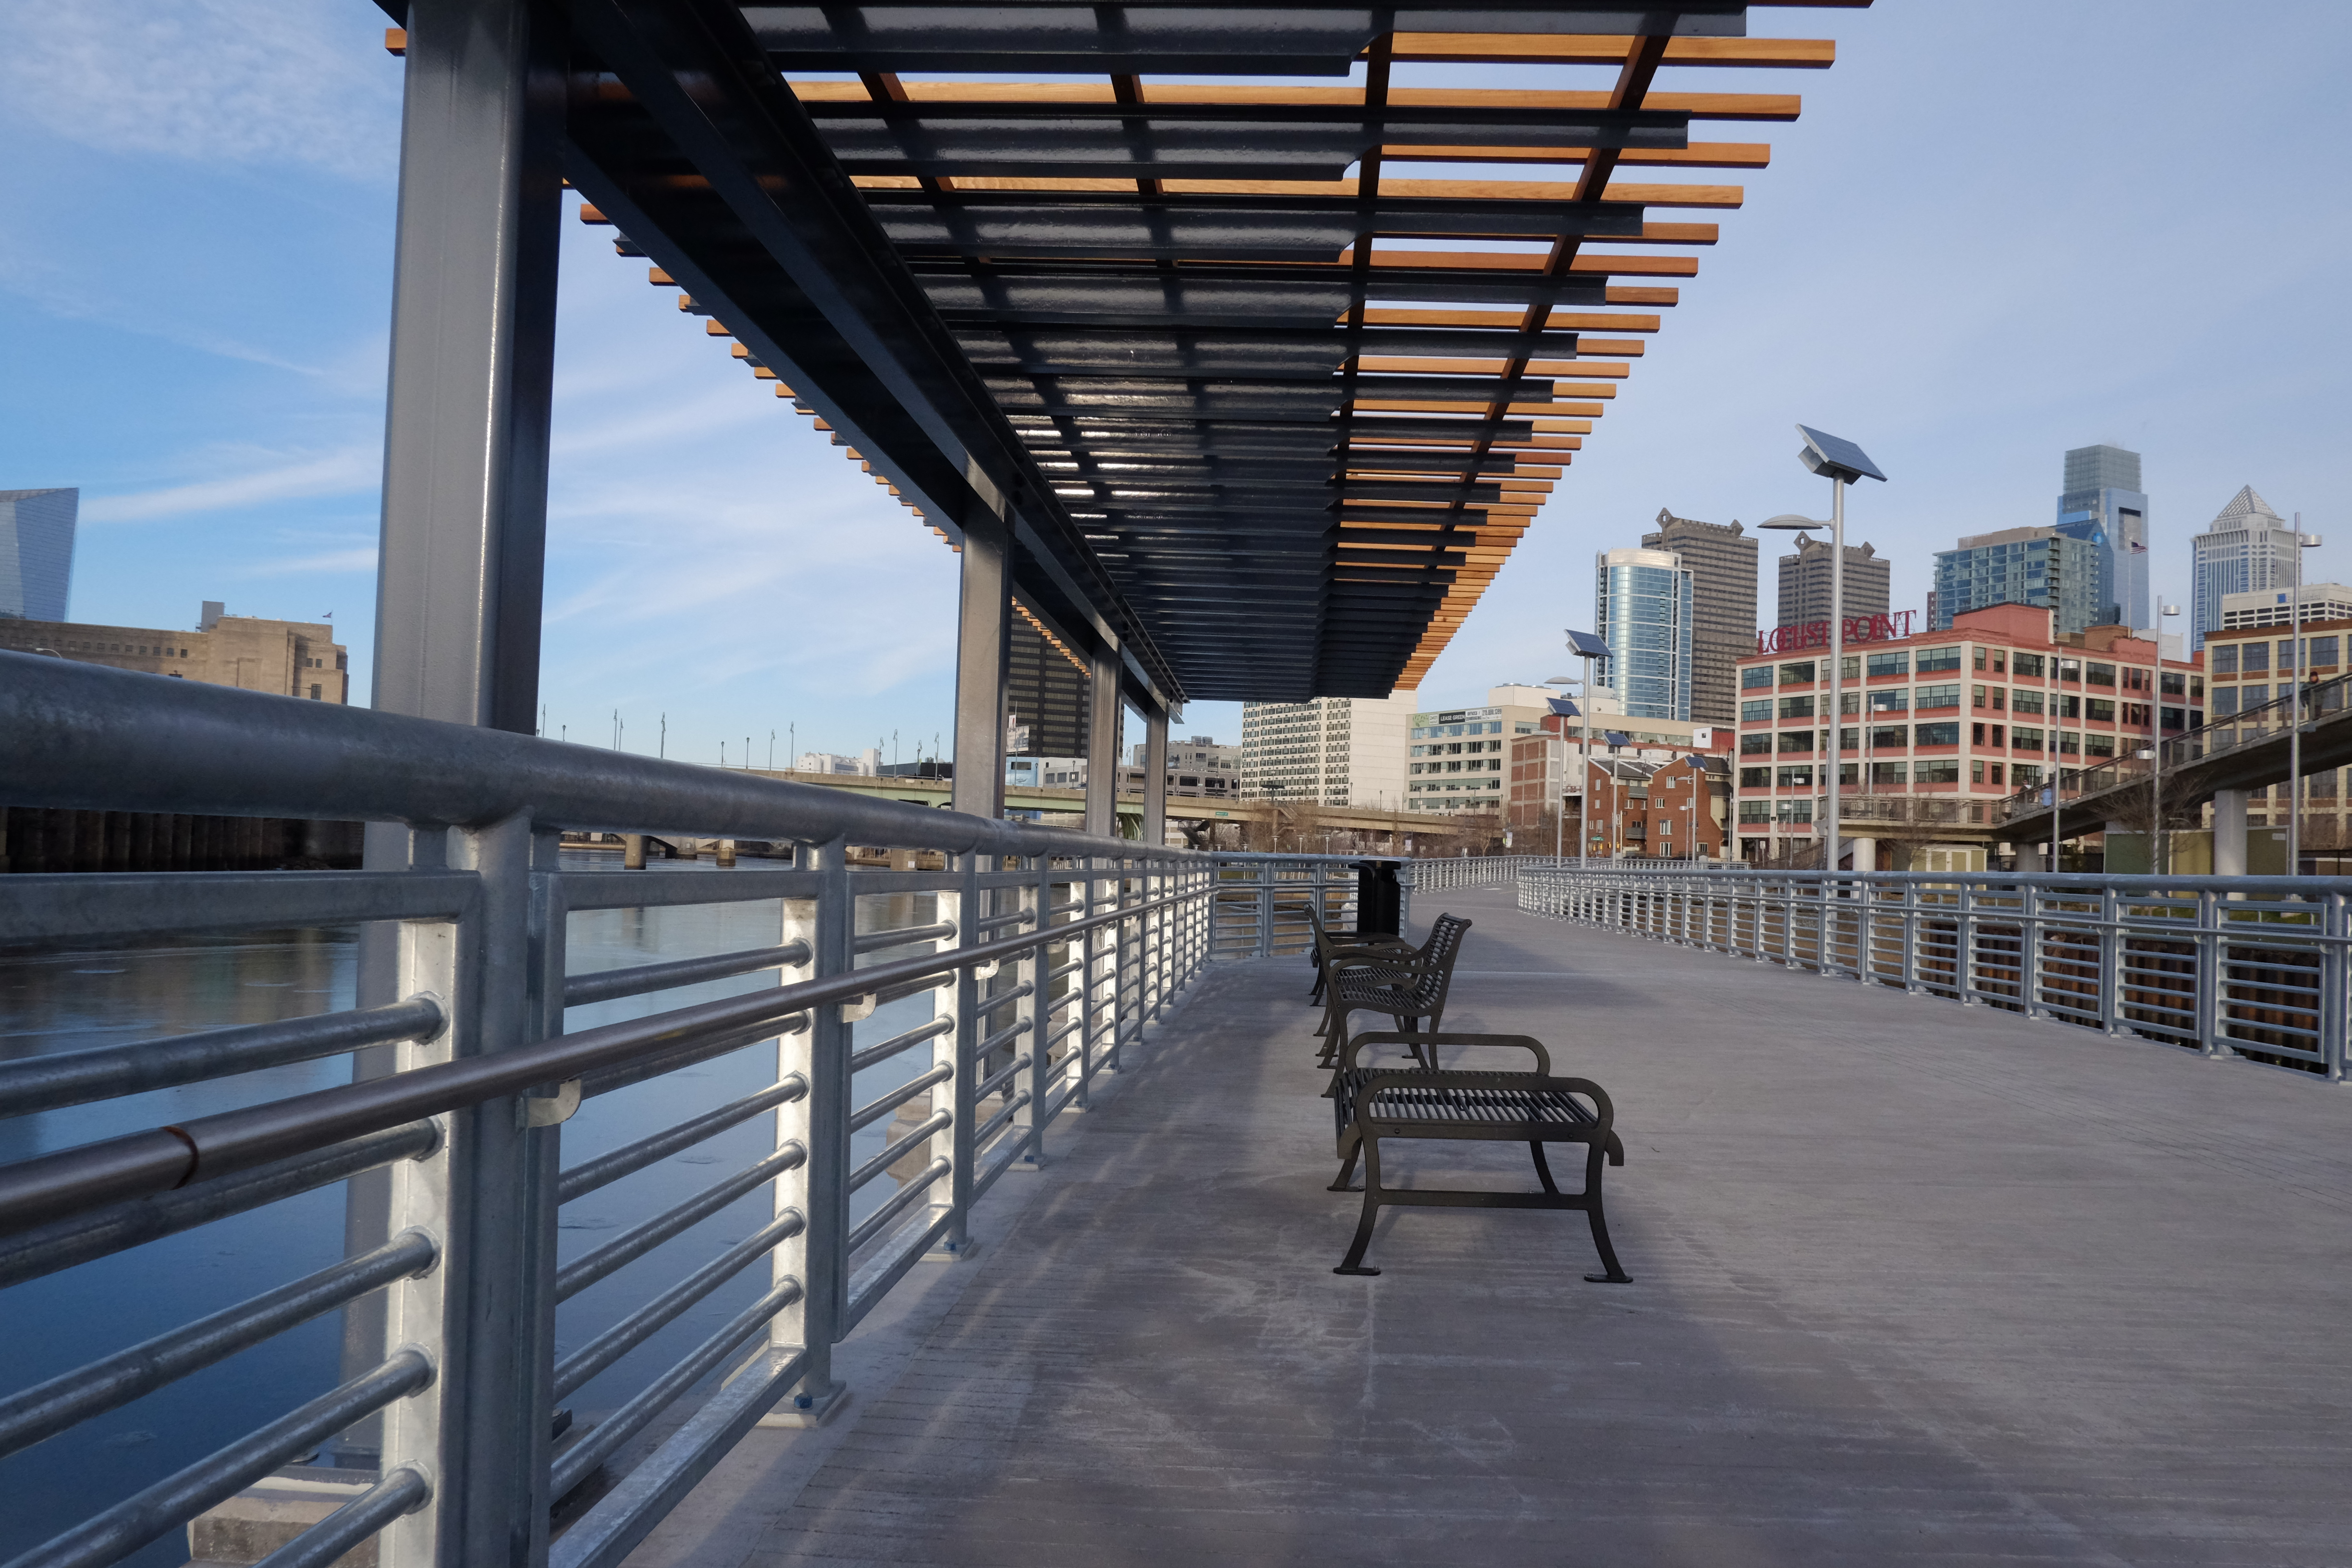 Lots of lines, purlins and rails. Schuylkill Banks Boardwalk, January 2014